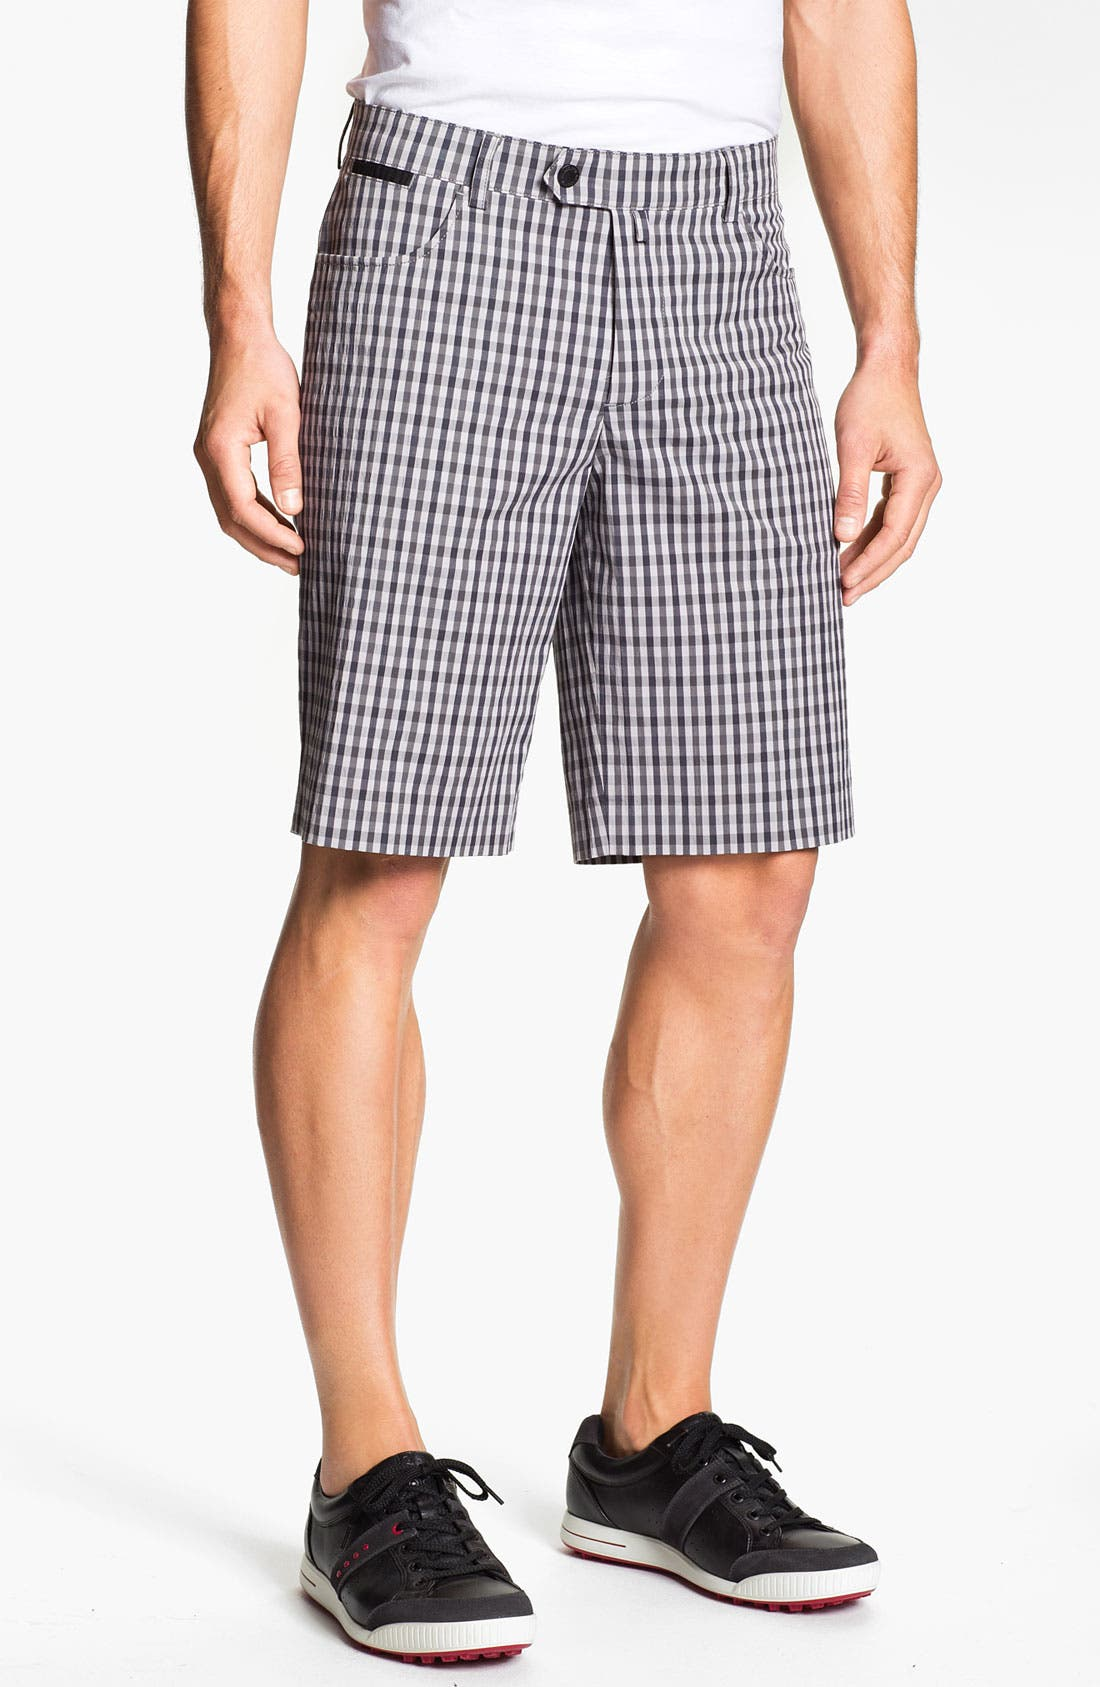 Alternate Image 1 Selected - Aquascutum Golf 'Sport Check' Golf Shorts